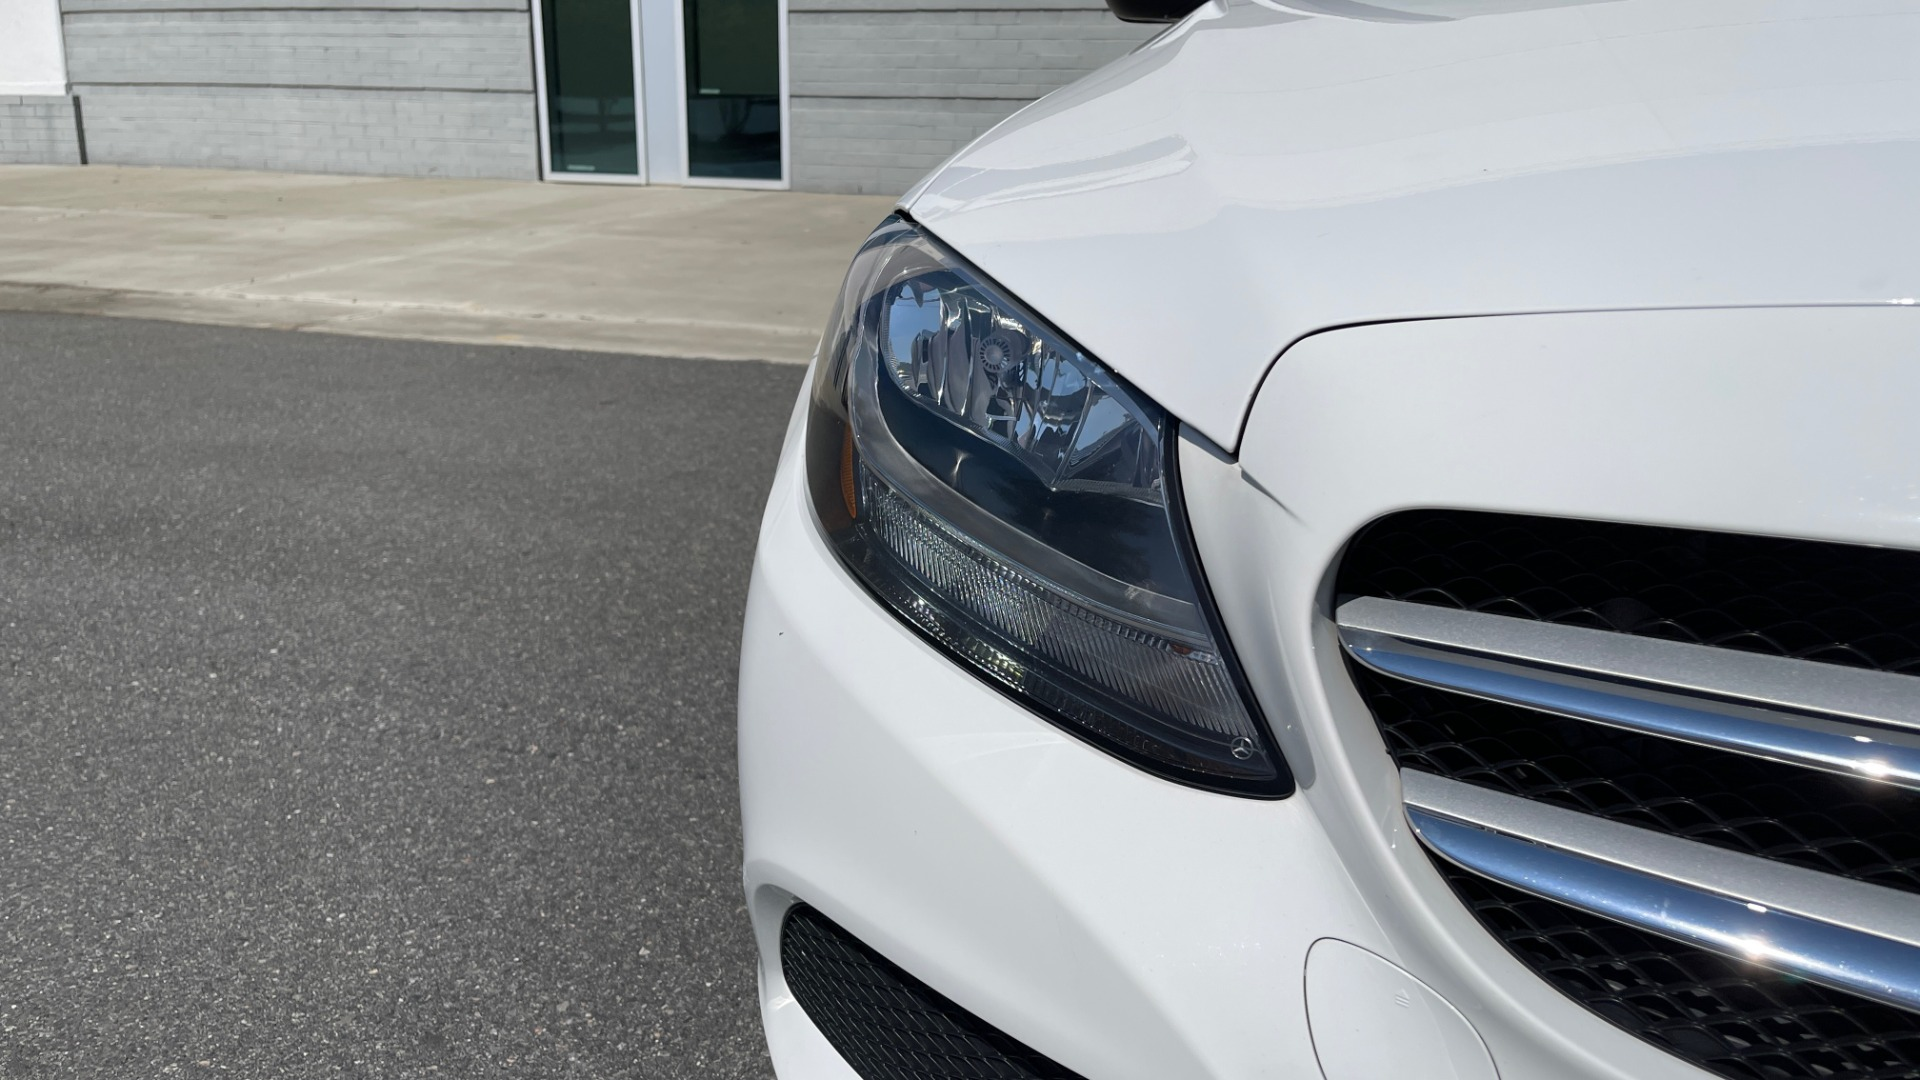 Used 2018 Mercedes-Benz C-CLASS C 300 PREMIUM / APPLE CARPLAY / KEYLESS-GO / SUNROOF / REARVIEW for sale $32,995 at Formula Imports in Charlotte NC 28227 12